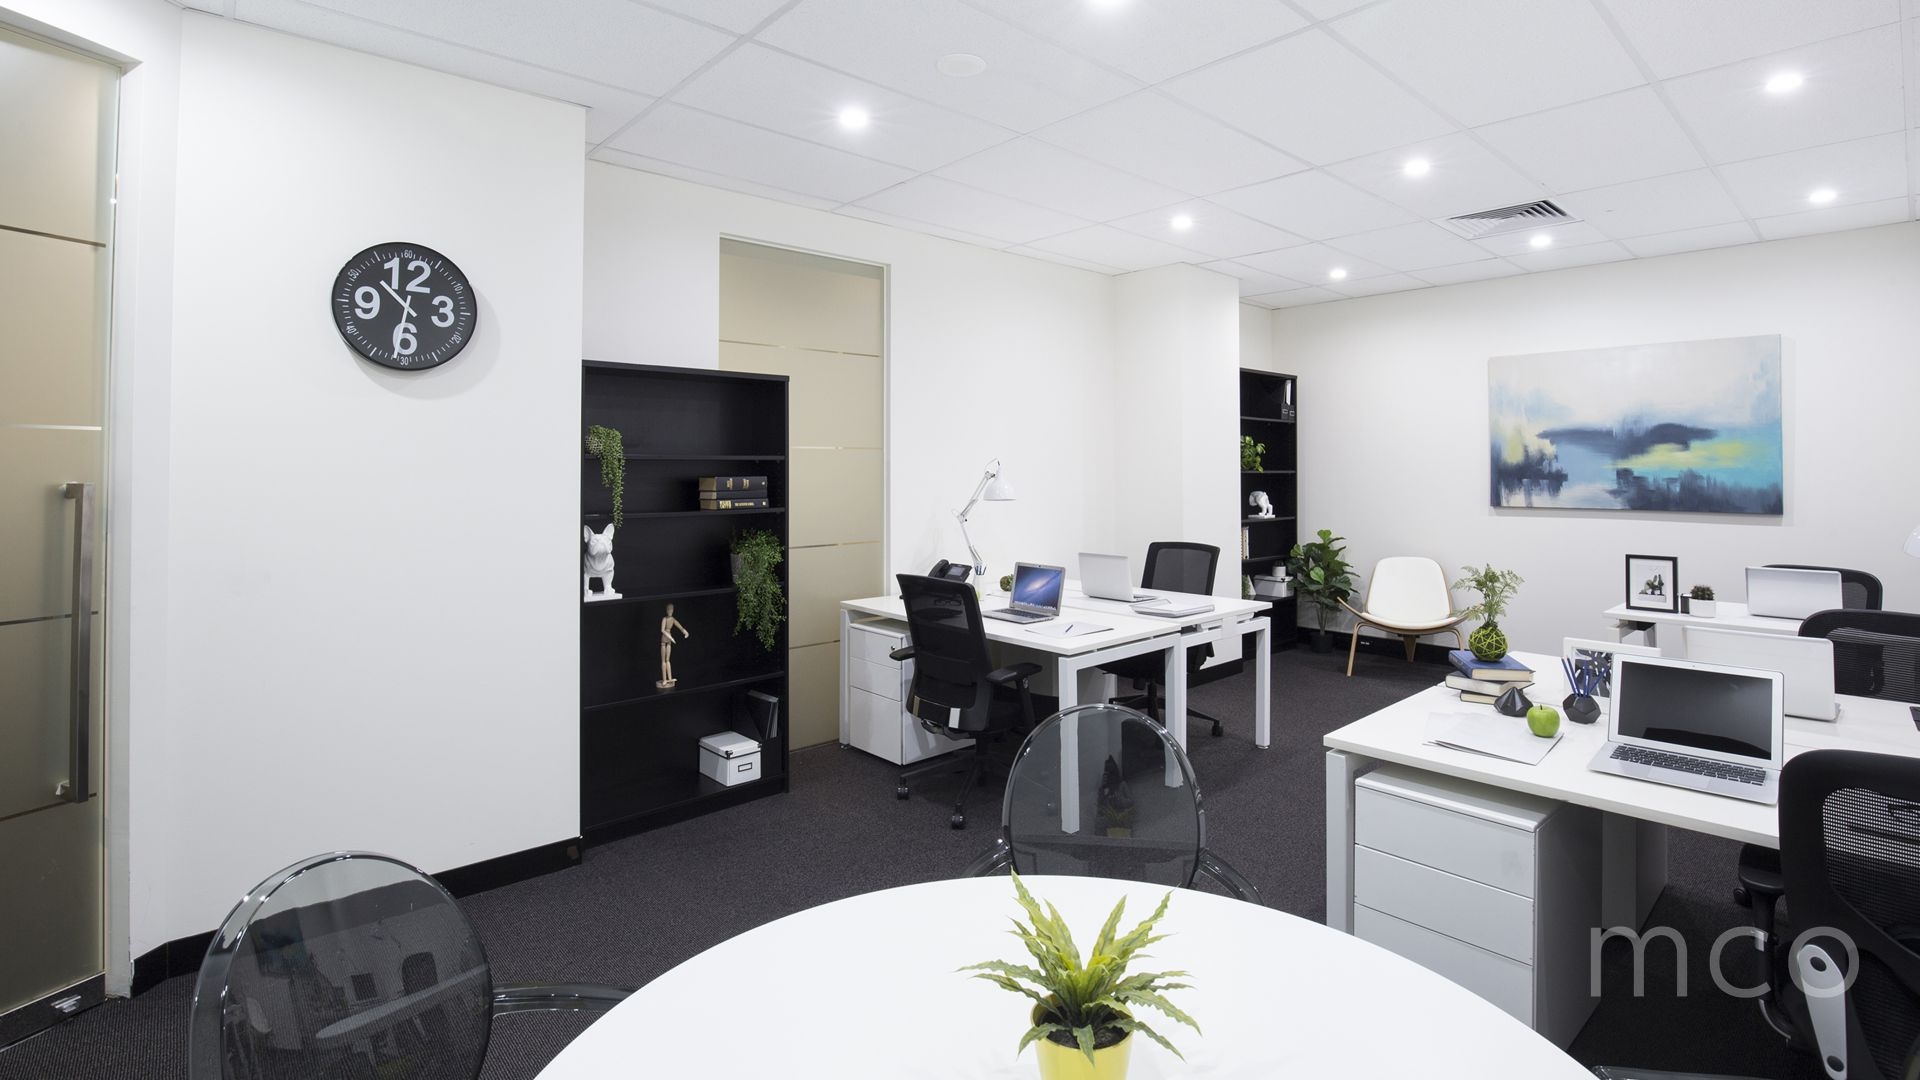 Secure, private office space with on-site parking